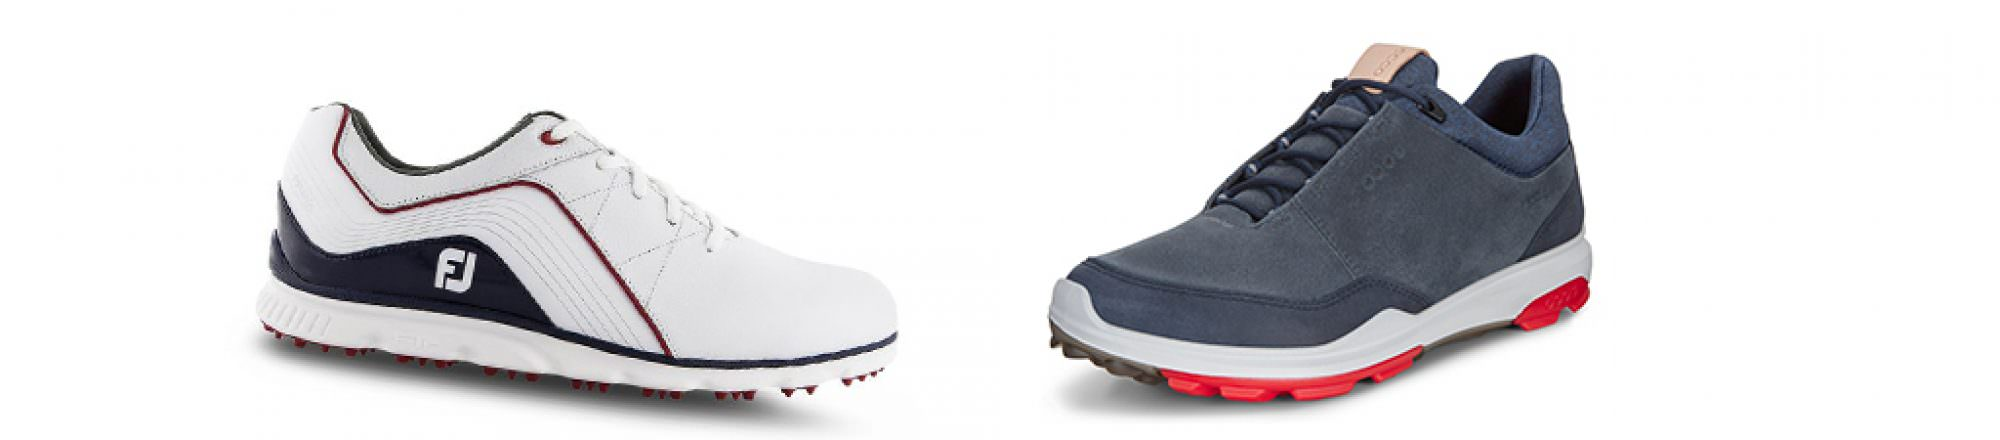 The best spikeless golf shoes of 2019